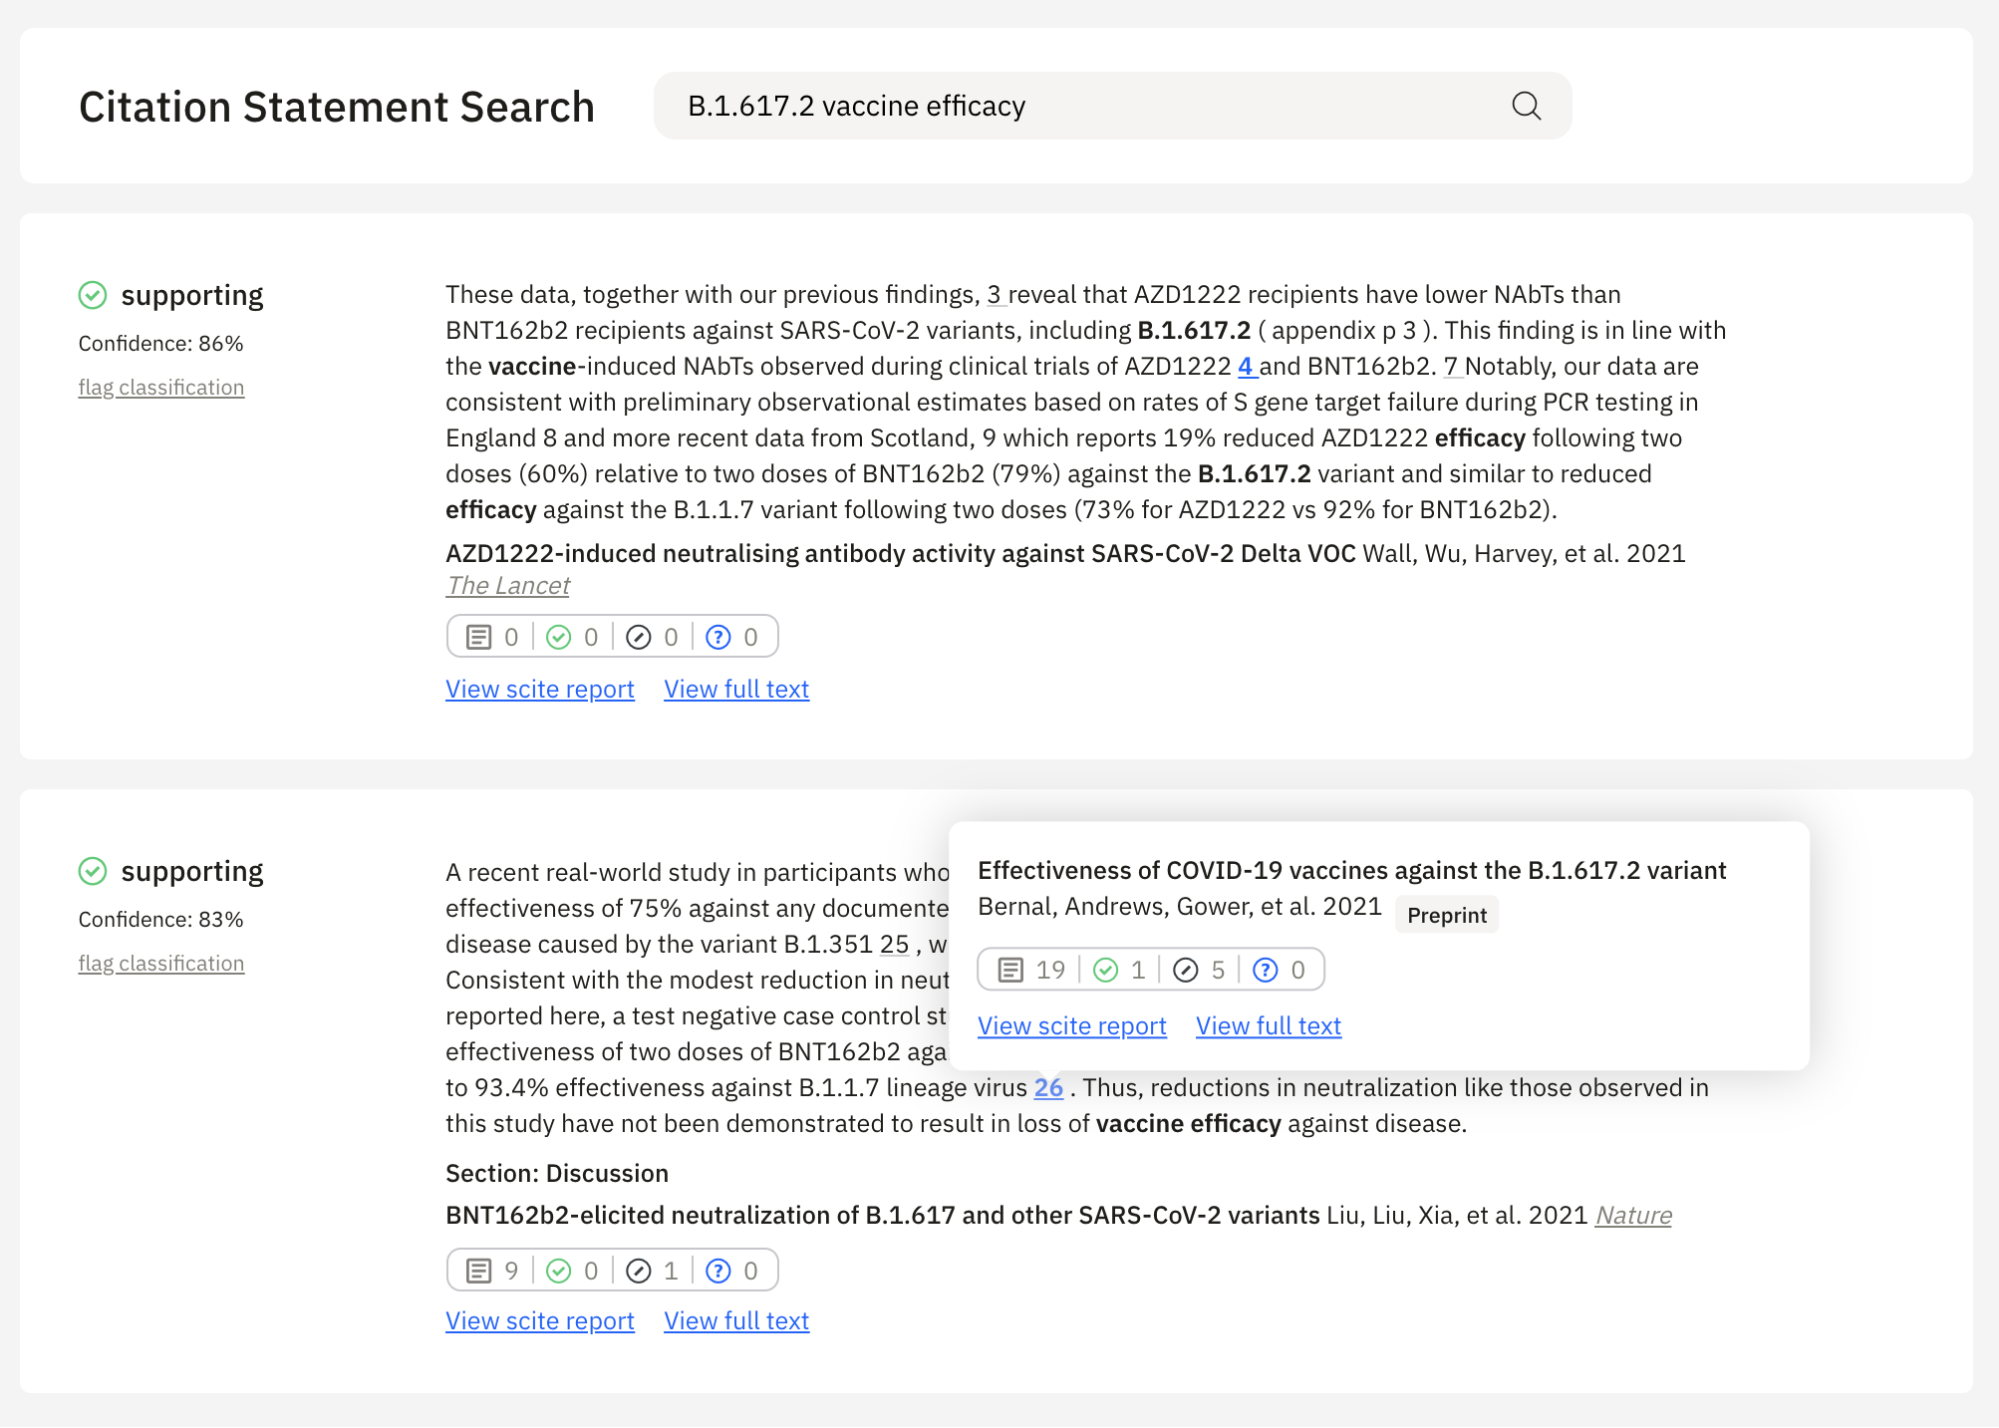 Example of a citation statement search showing a search for vaccine efficacy.